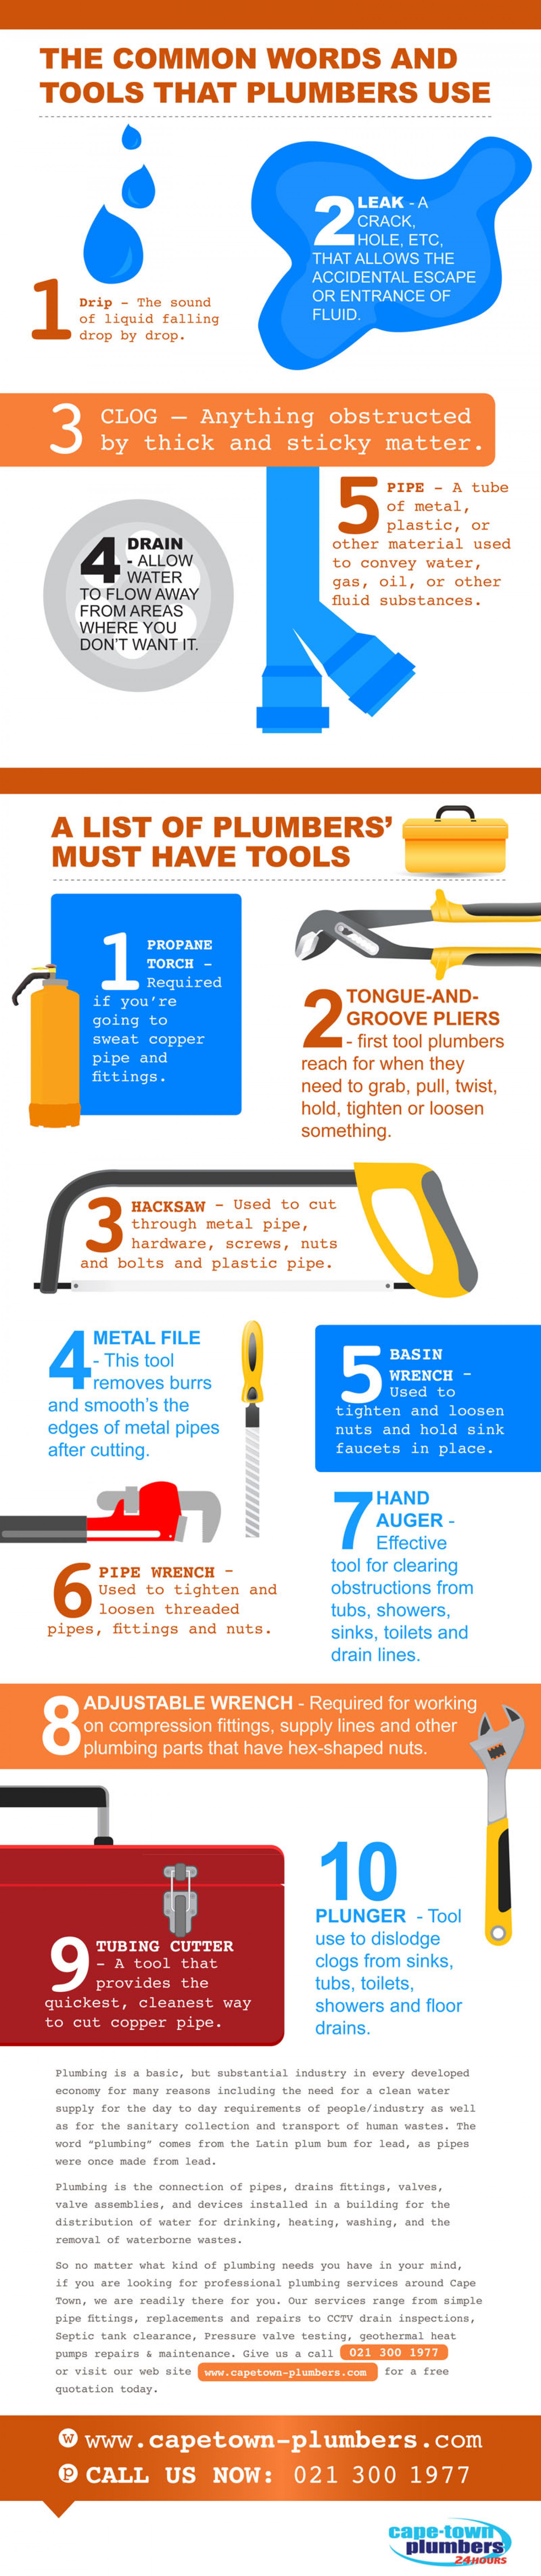 The Common Words and Tools That Plumbers Use Infographic